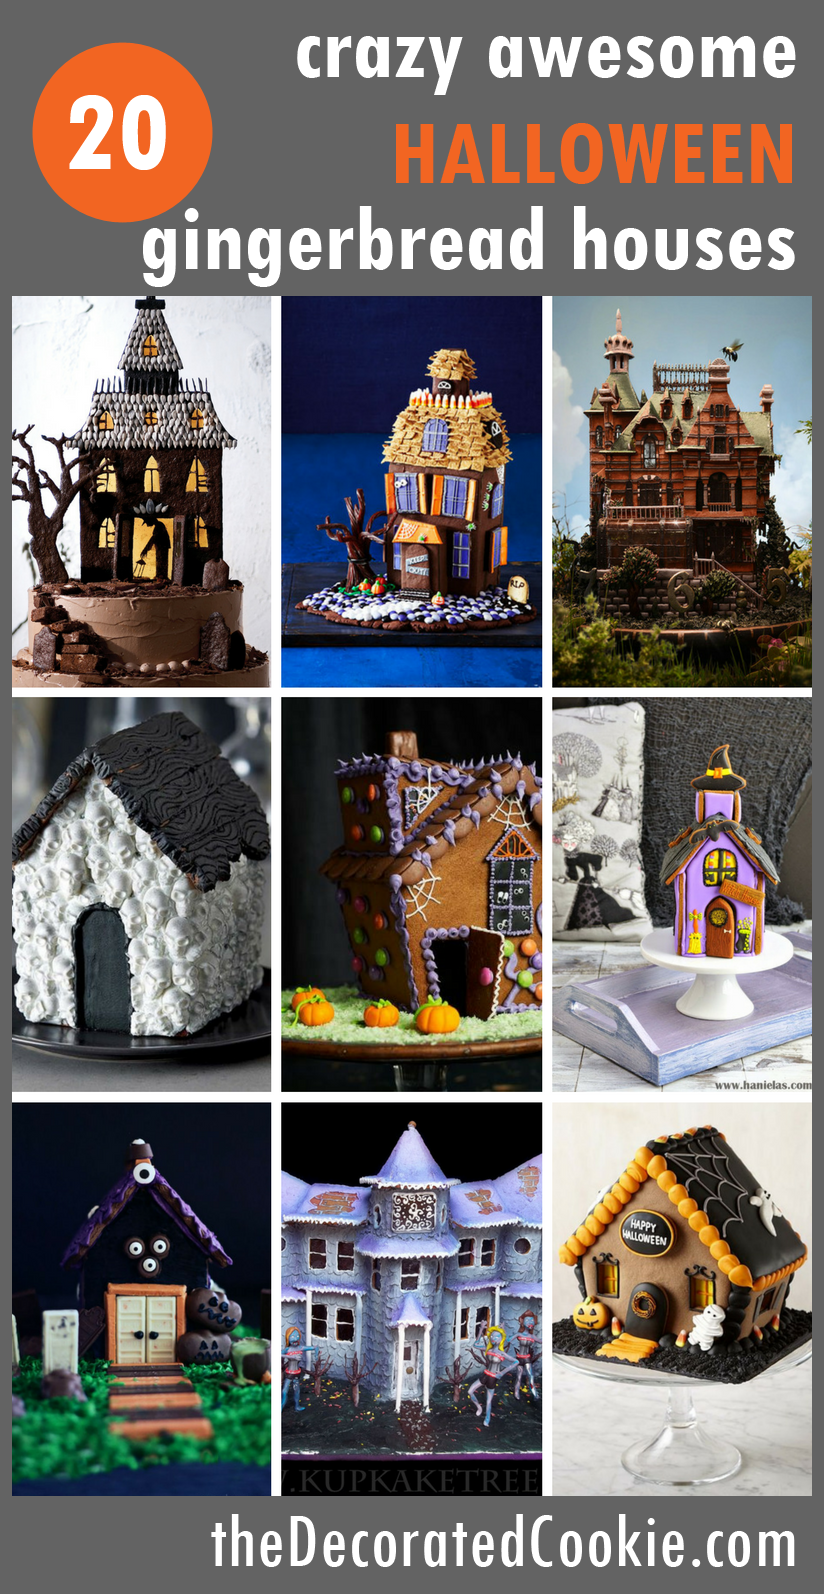 roundup of 20 awesome Halloween gingerbread houses